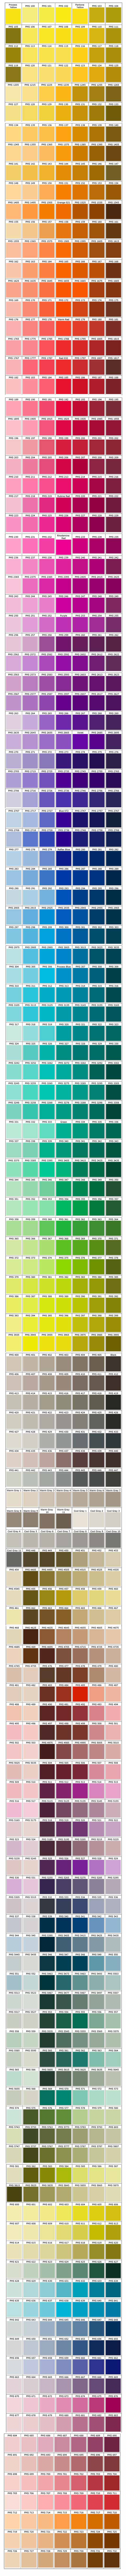 Pms colour guide this chart is a reference guide only pantone colors on computer screens may vary based on the graphics card and monitor used in your system nvjuhfo Choice Image